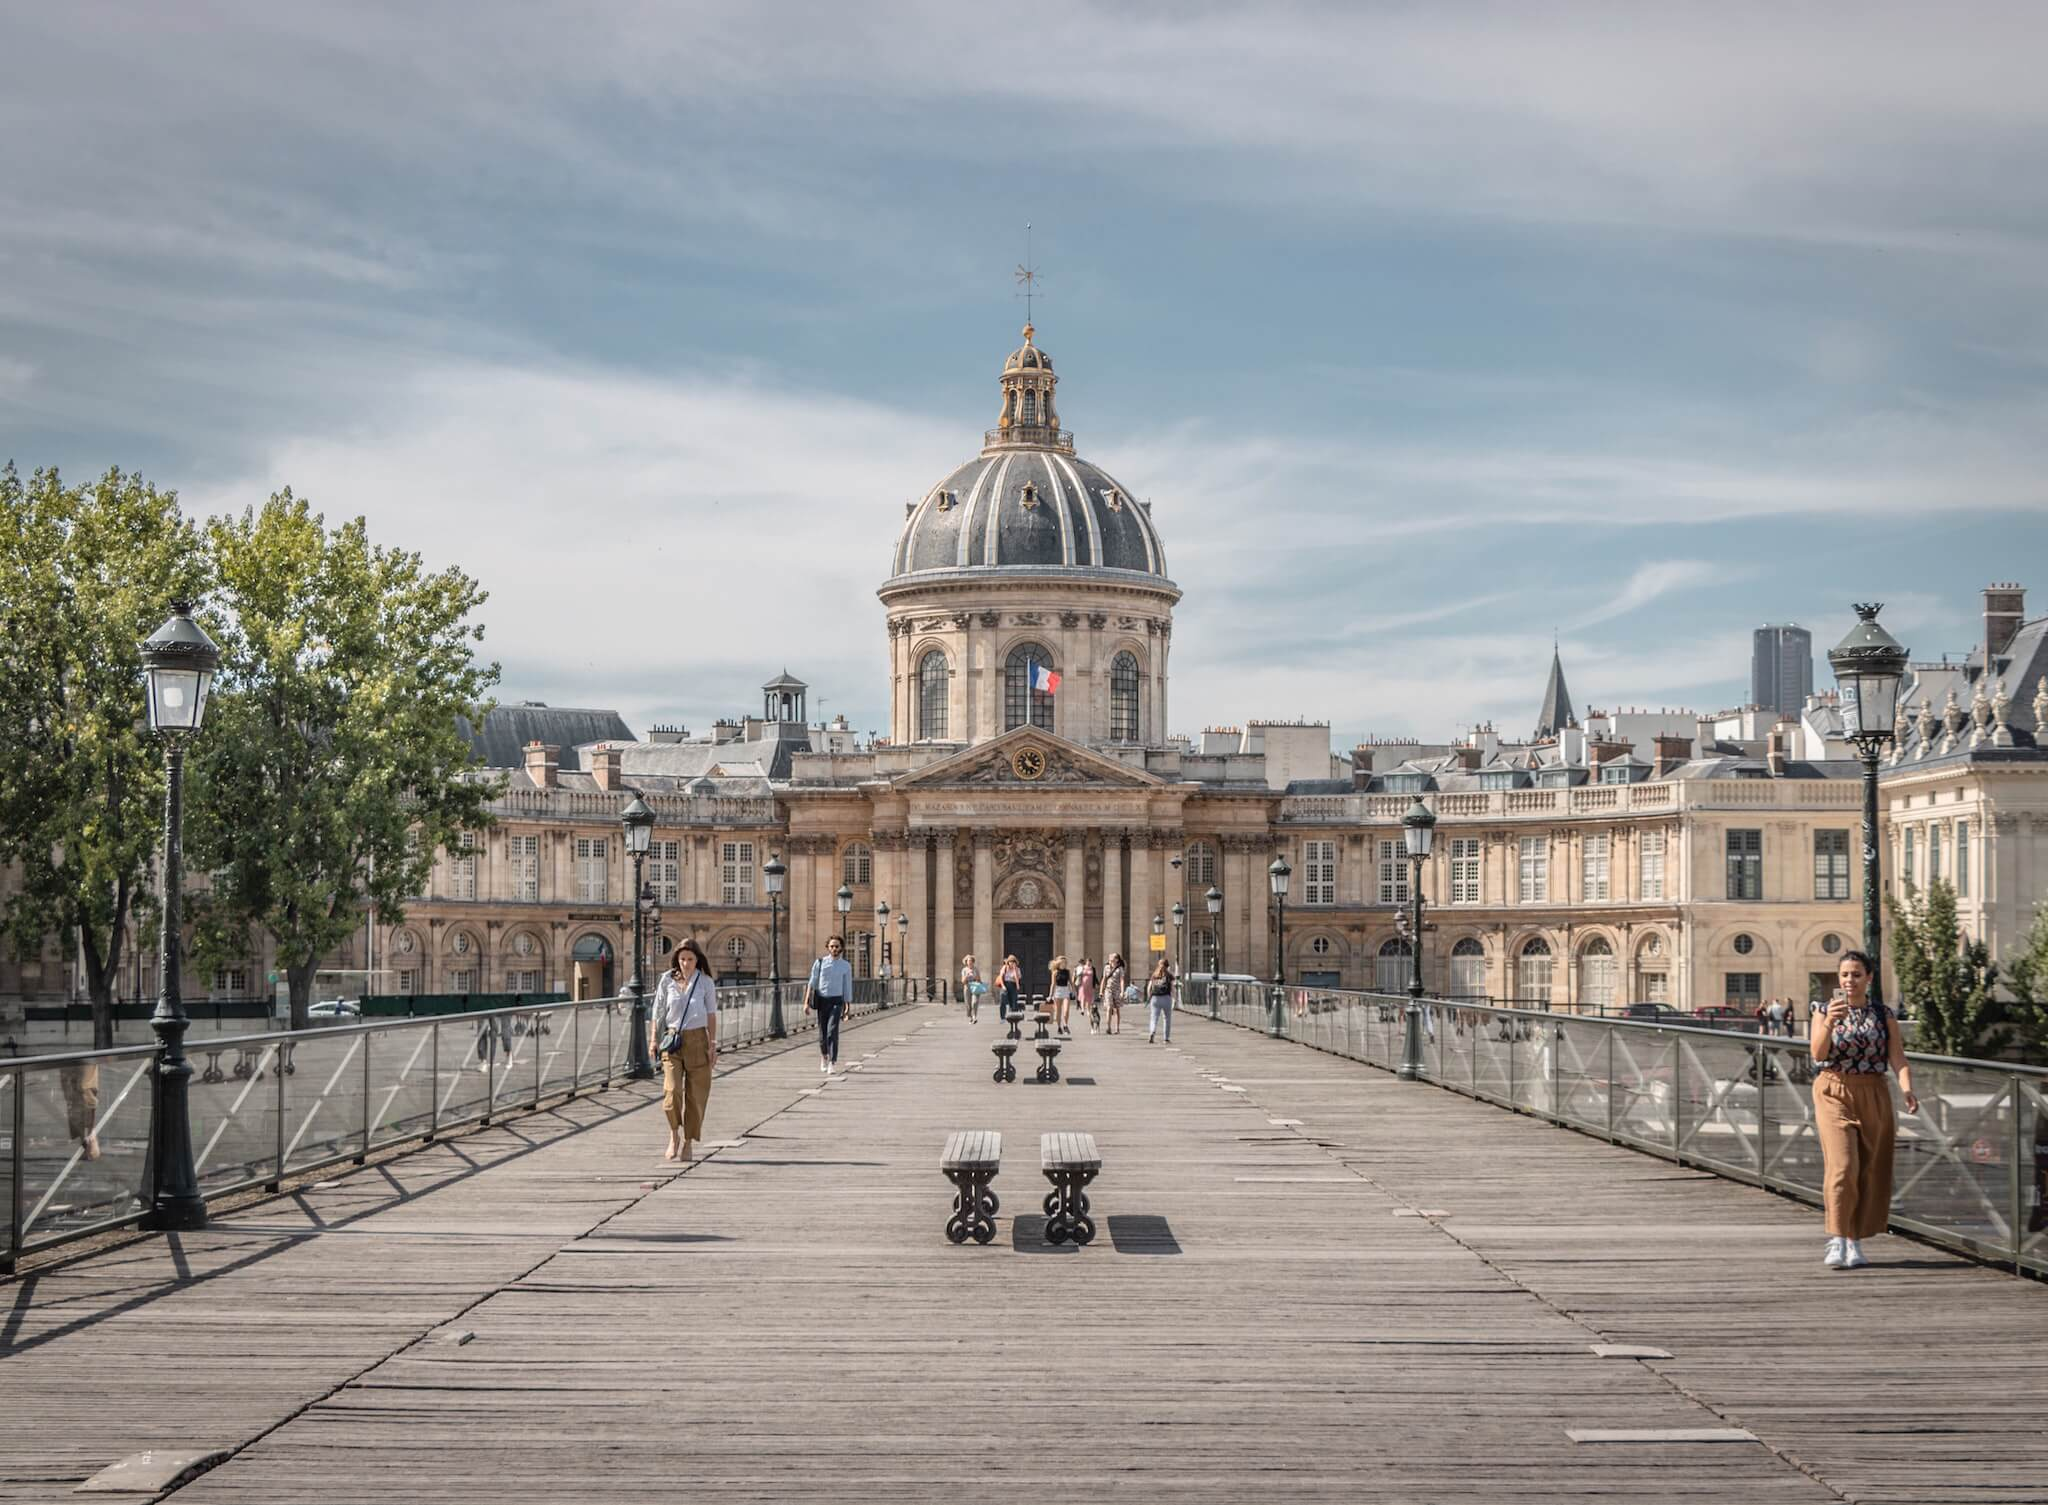 A view of the Institut de France from the Pont des Arts bridge in Paris, where people are seen walking on either side of the bridge.